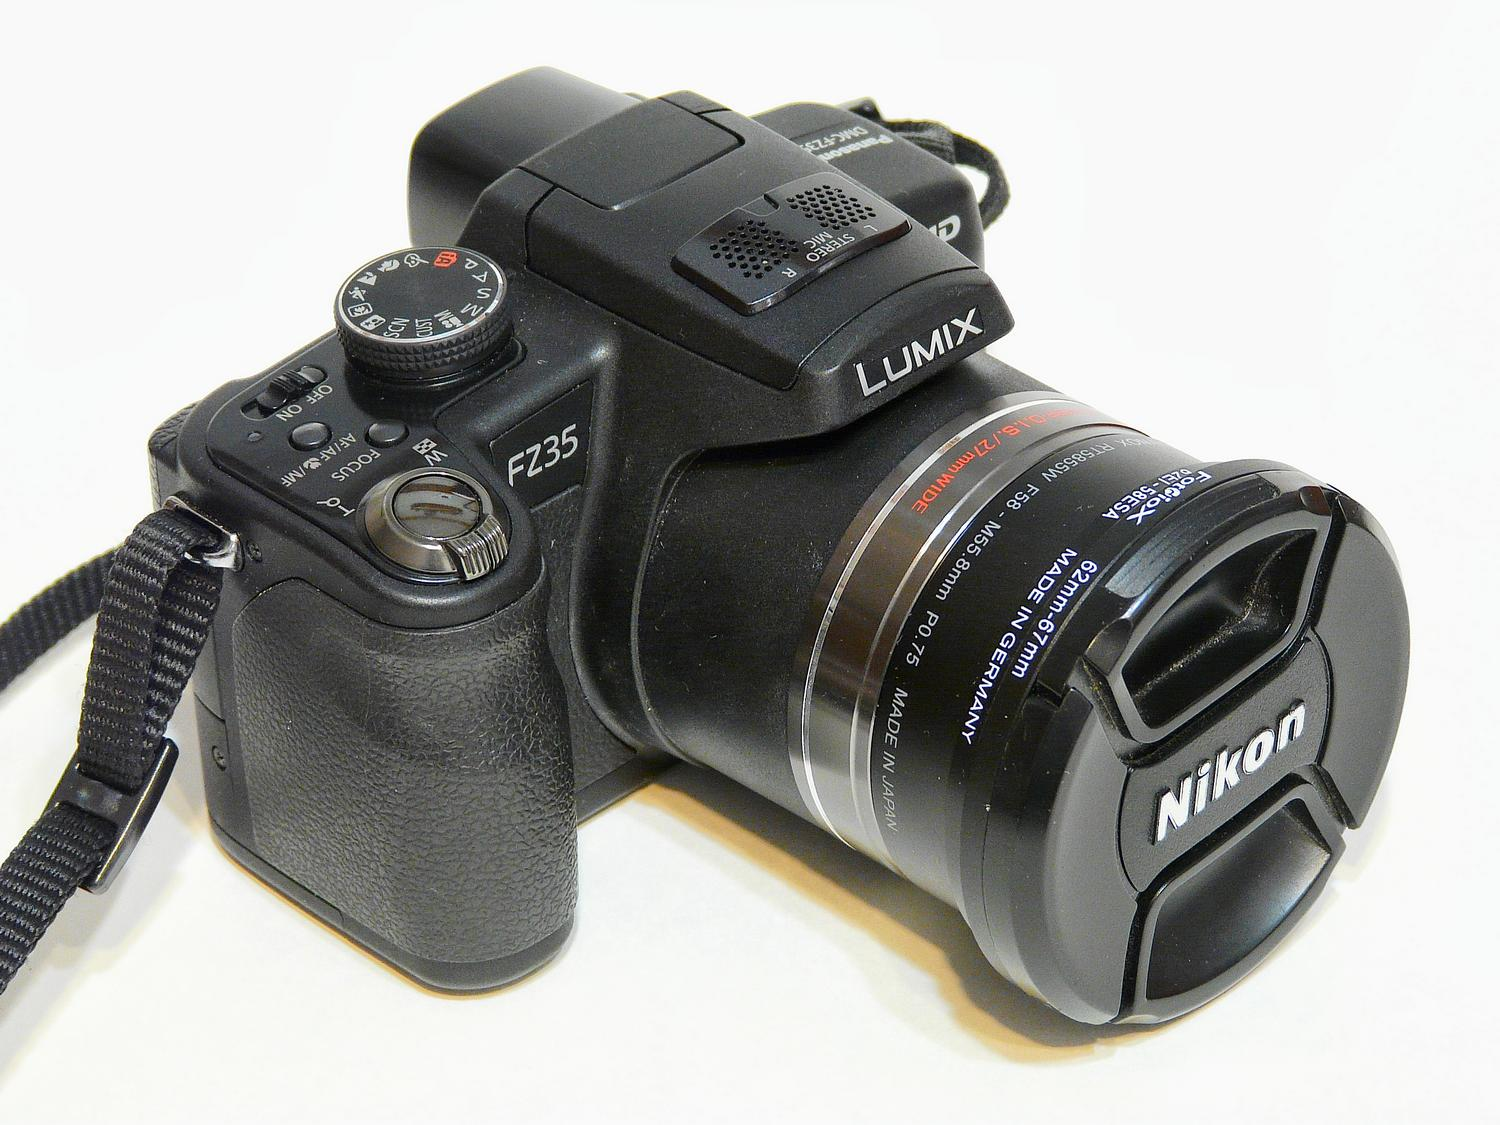 Panasonic DMC-FZ35 - All dressed up with a snazzy Nikon lens cap. - Panasonic DMC-FZ35 - Tony Karp, design, art, photography, techno-impressionist, techno-impressionism, aerial photography , drone , drones , dji , mavic pro , video , 3D printing - Books -